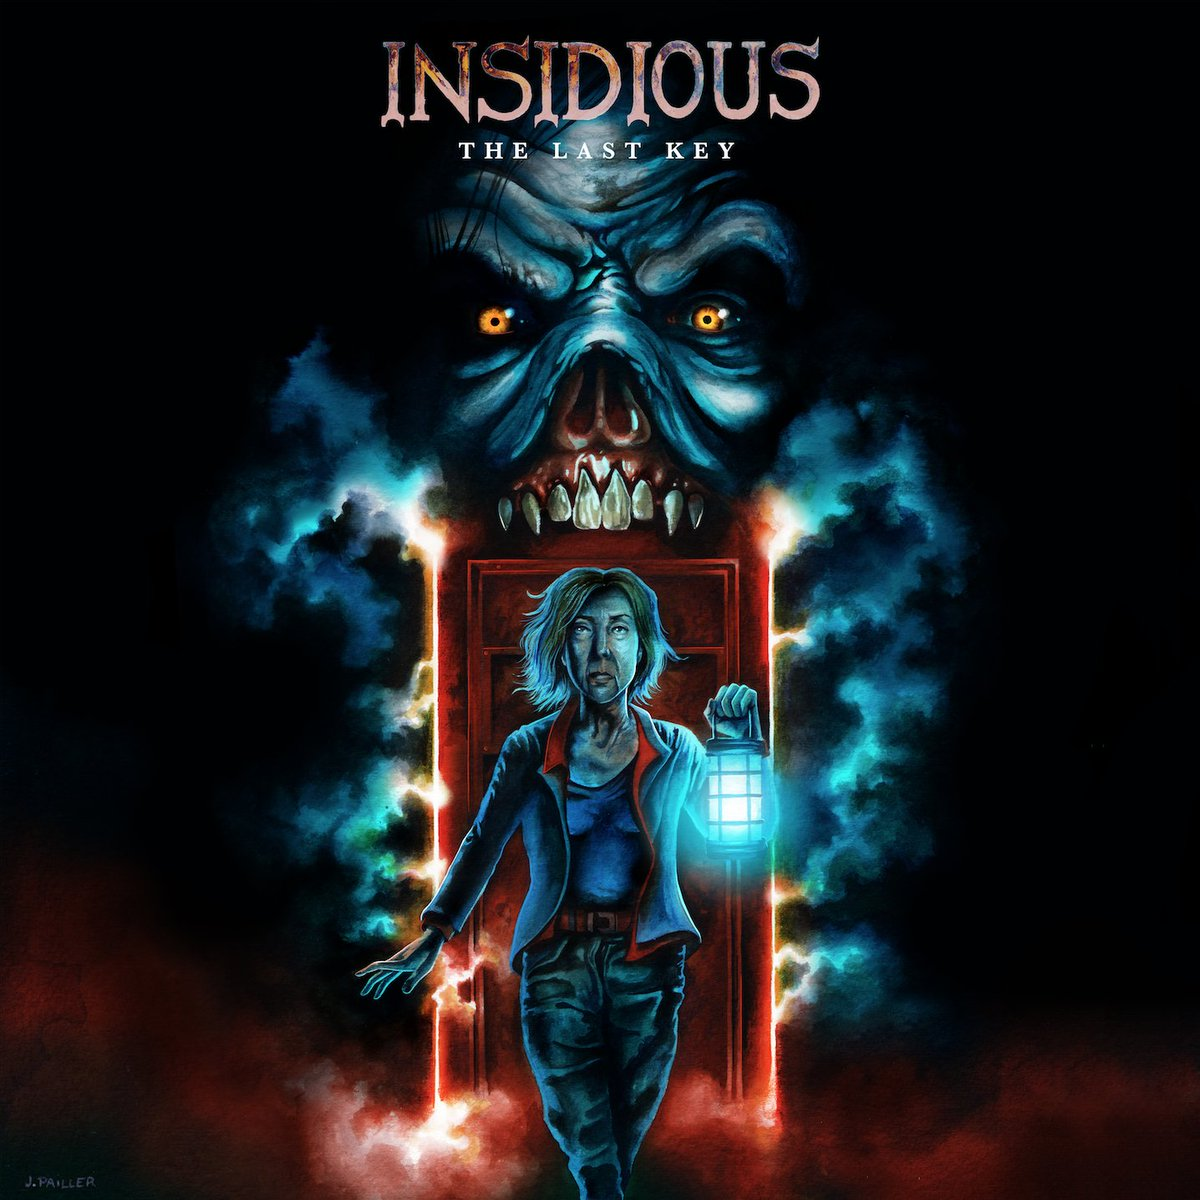 insidious full movie free download hd